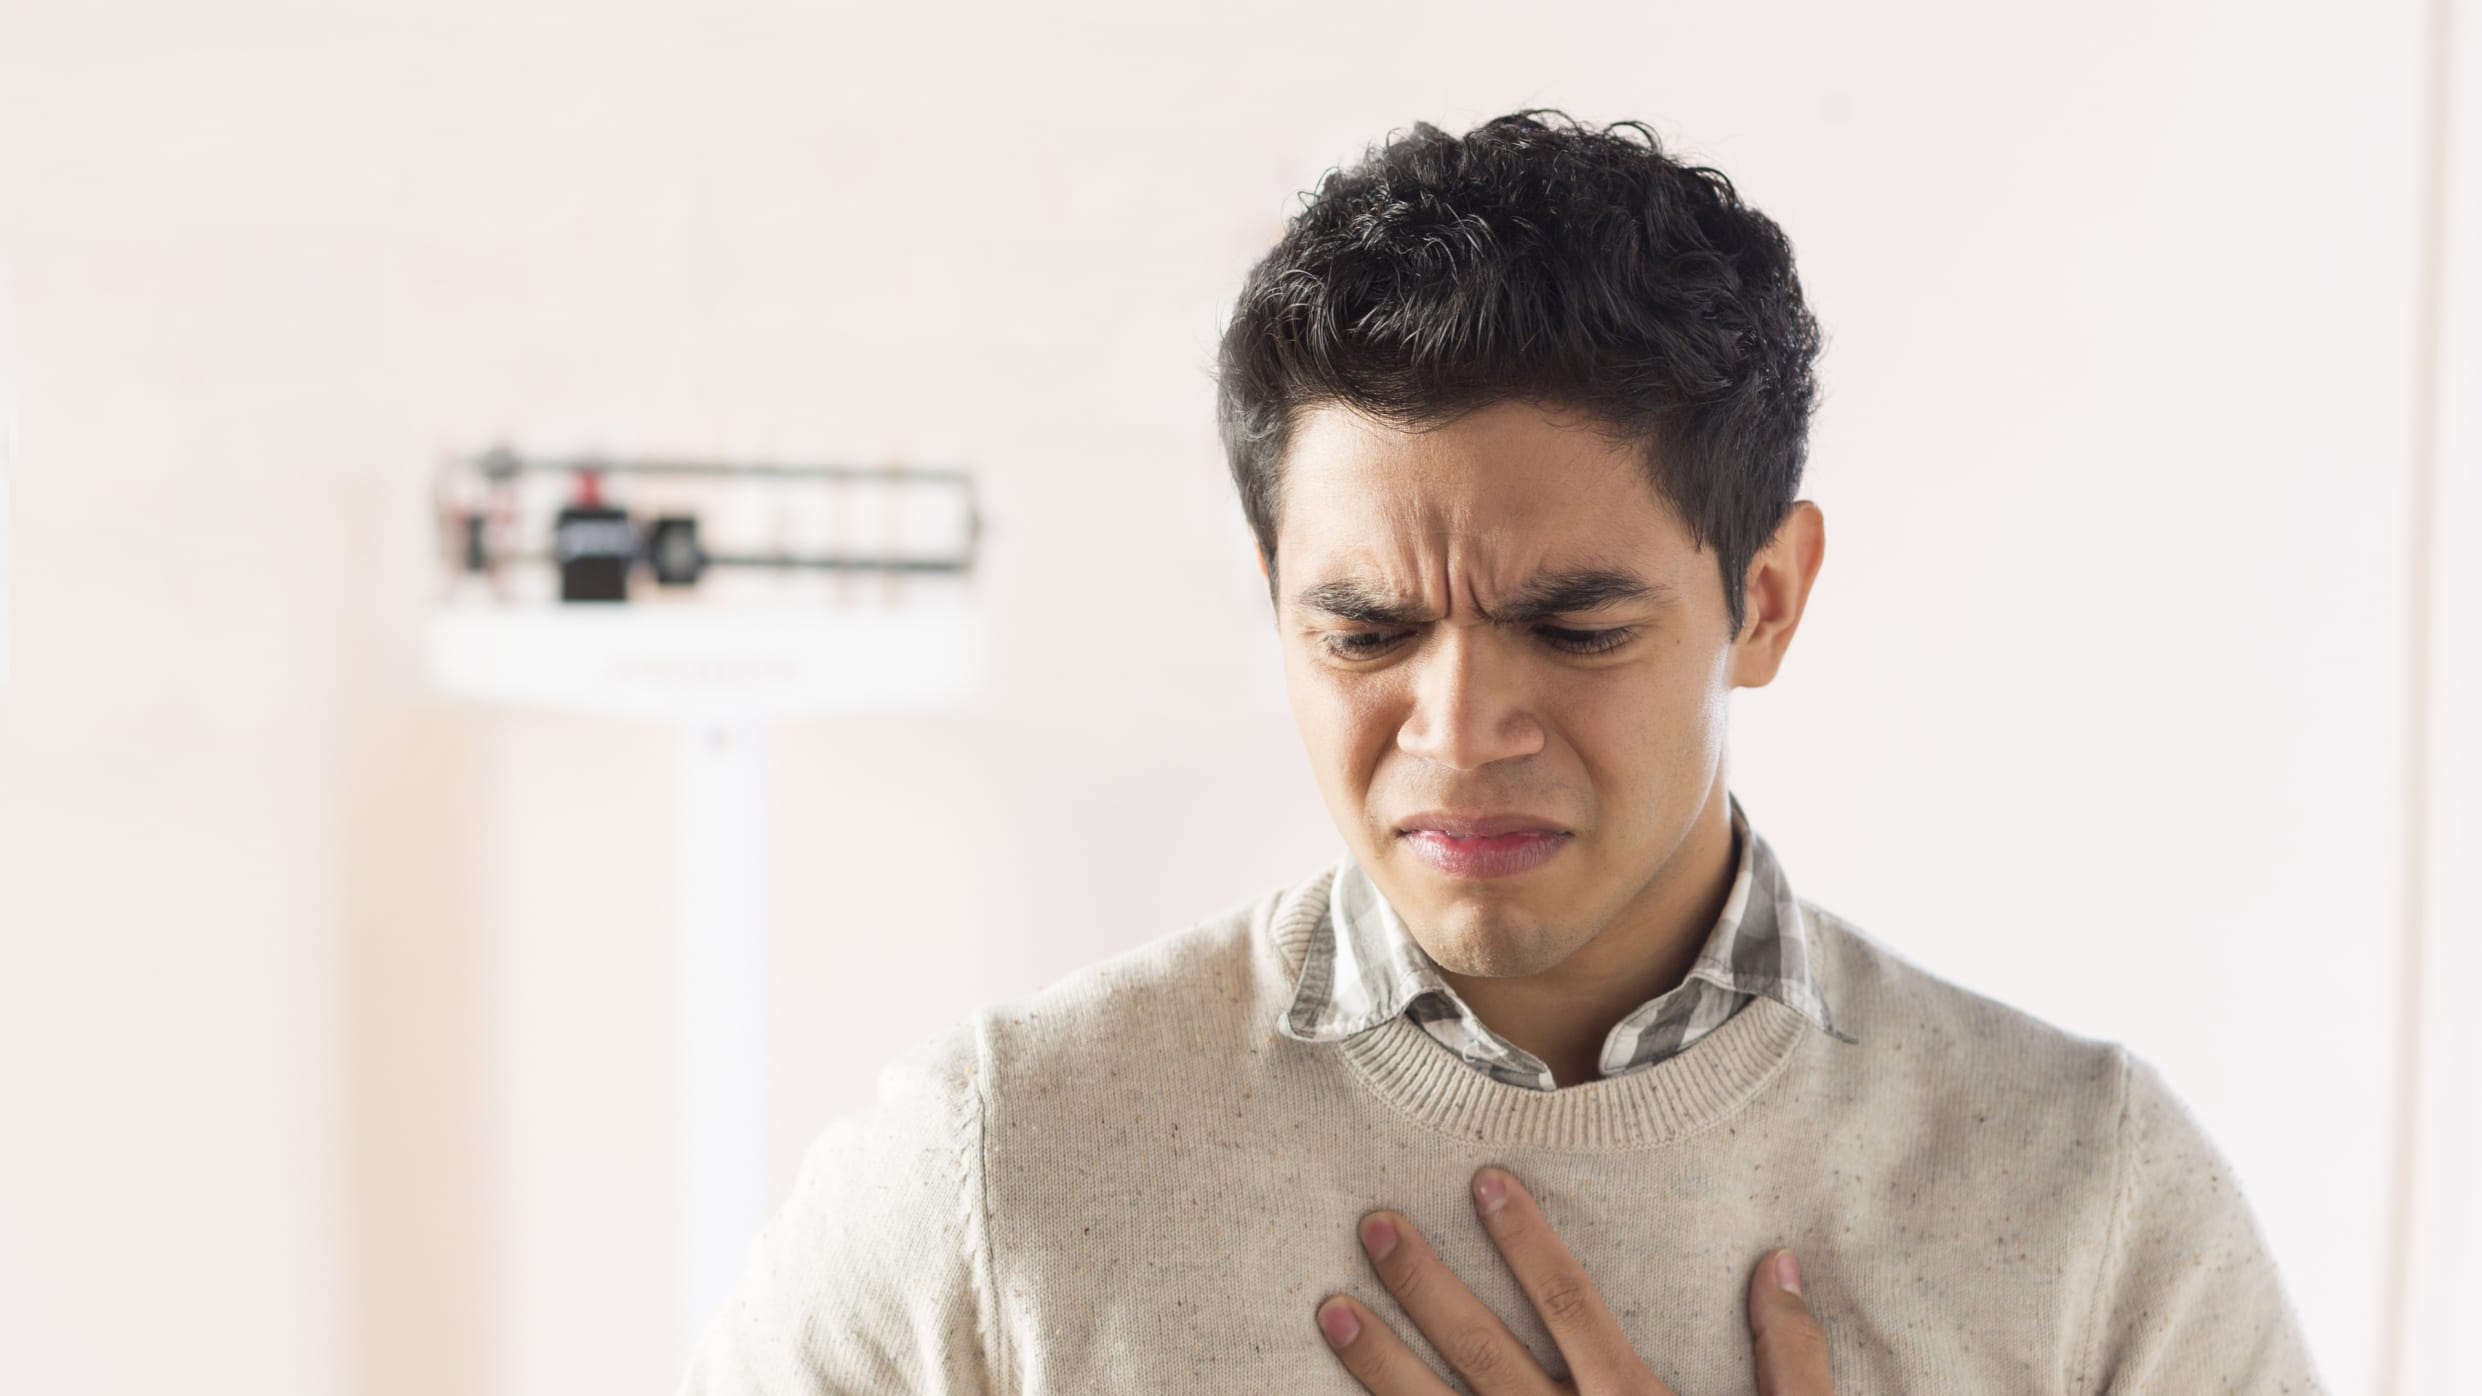 A young man experiencing dysphagia stands in an exam room holding his chest.